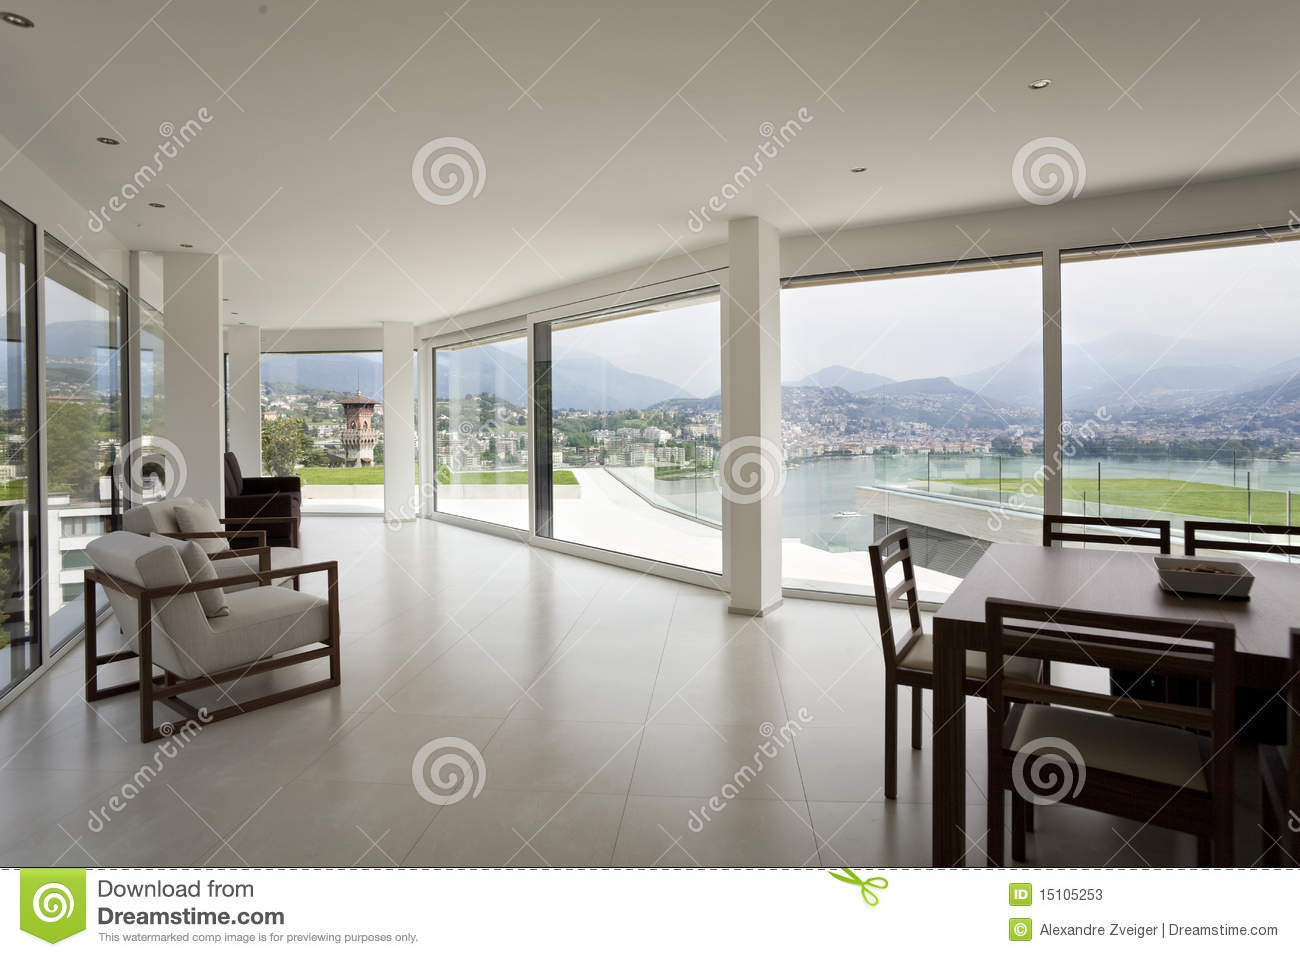 Bel int rieur d 39 une maison moderne photos stock image for Photos interieur maison moderne